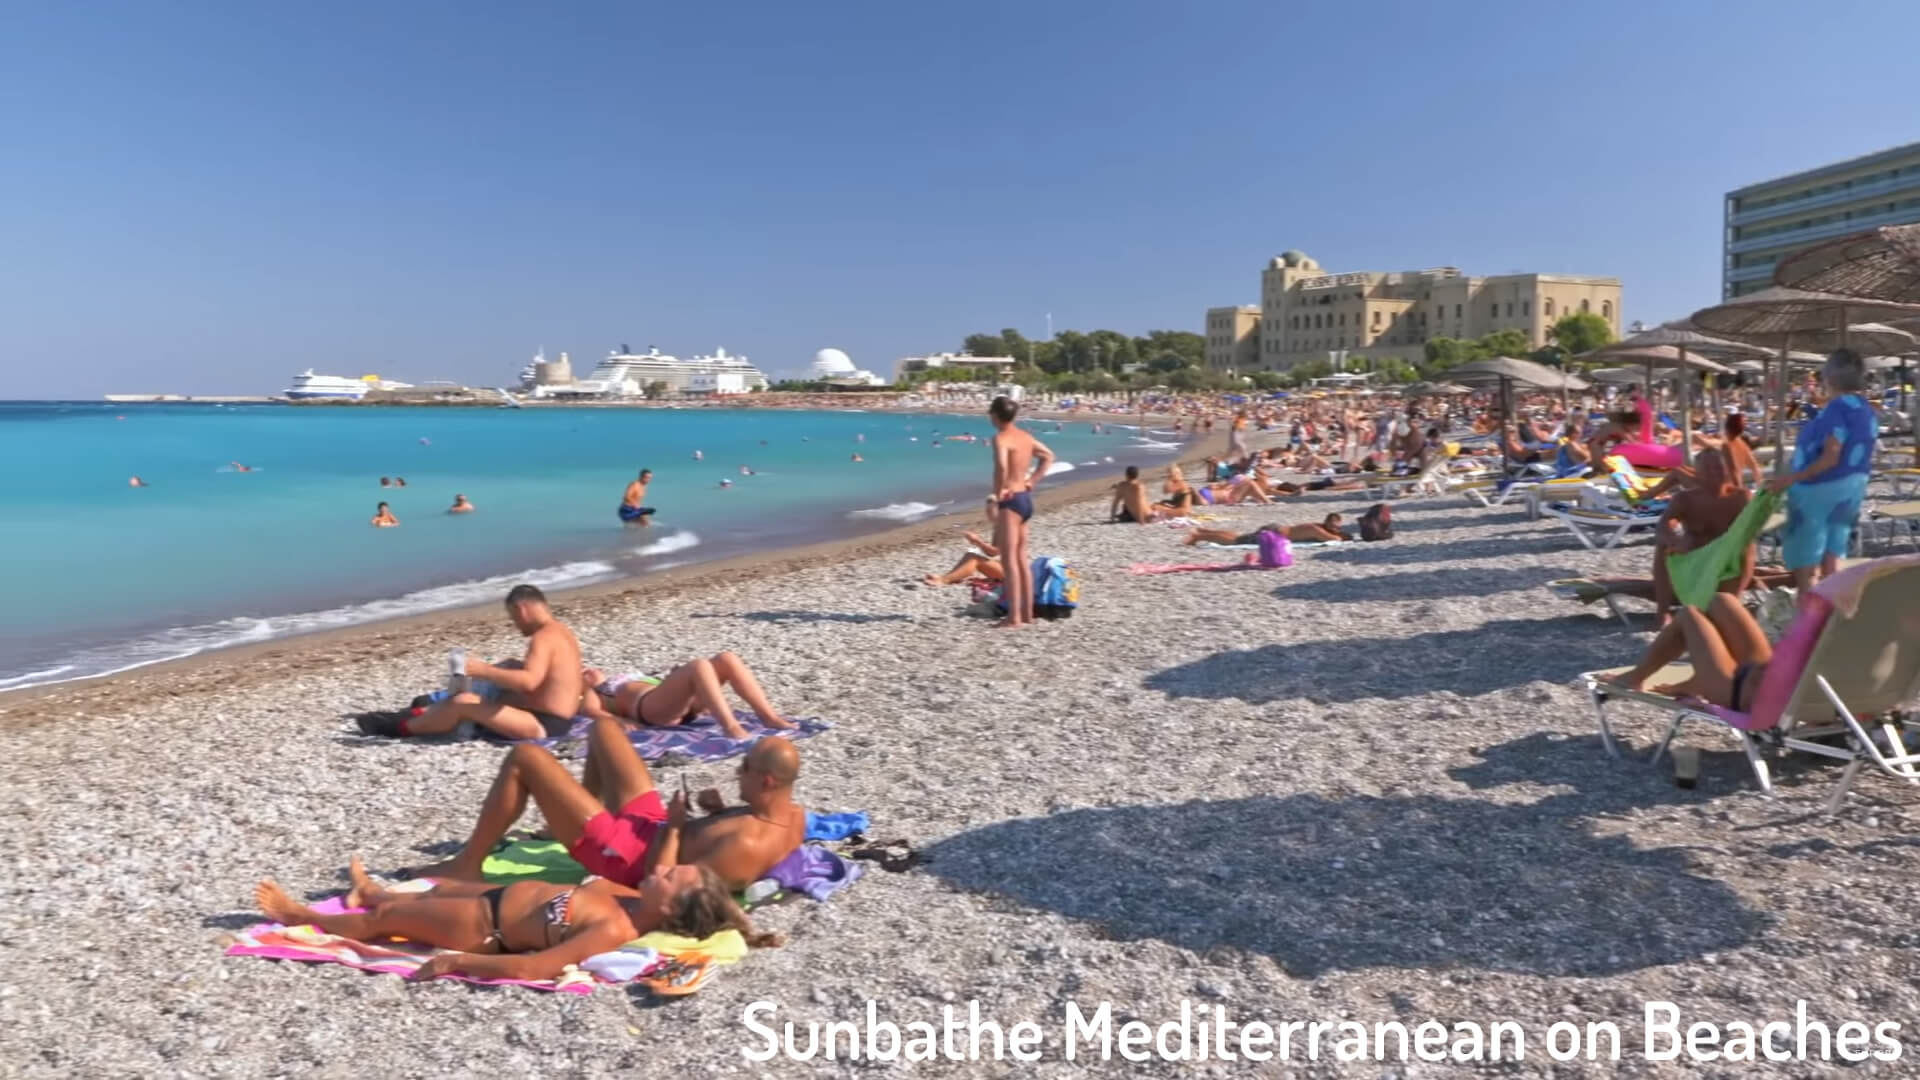 Sunbathe Mediterranean on Beaches